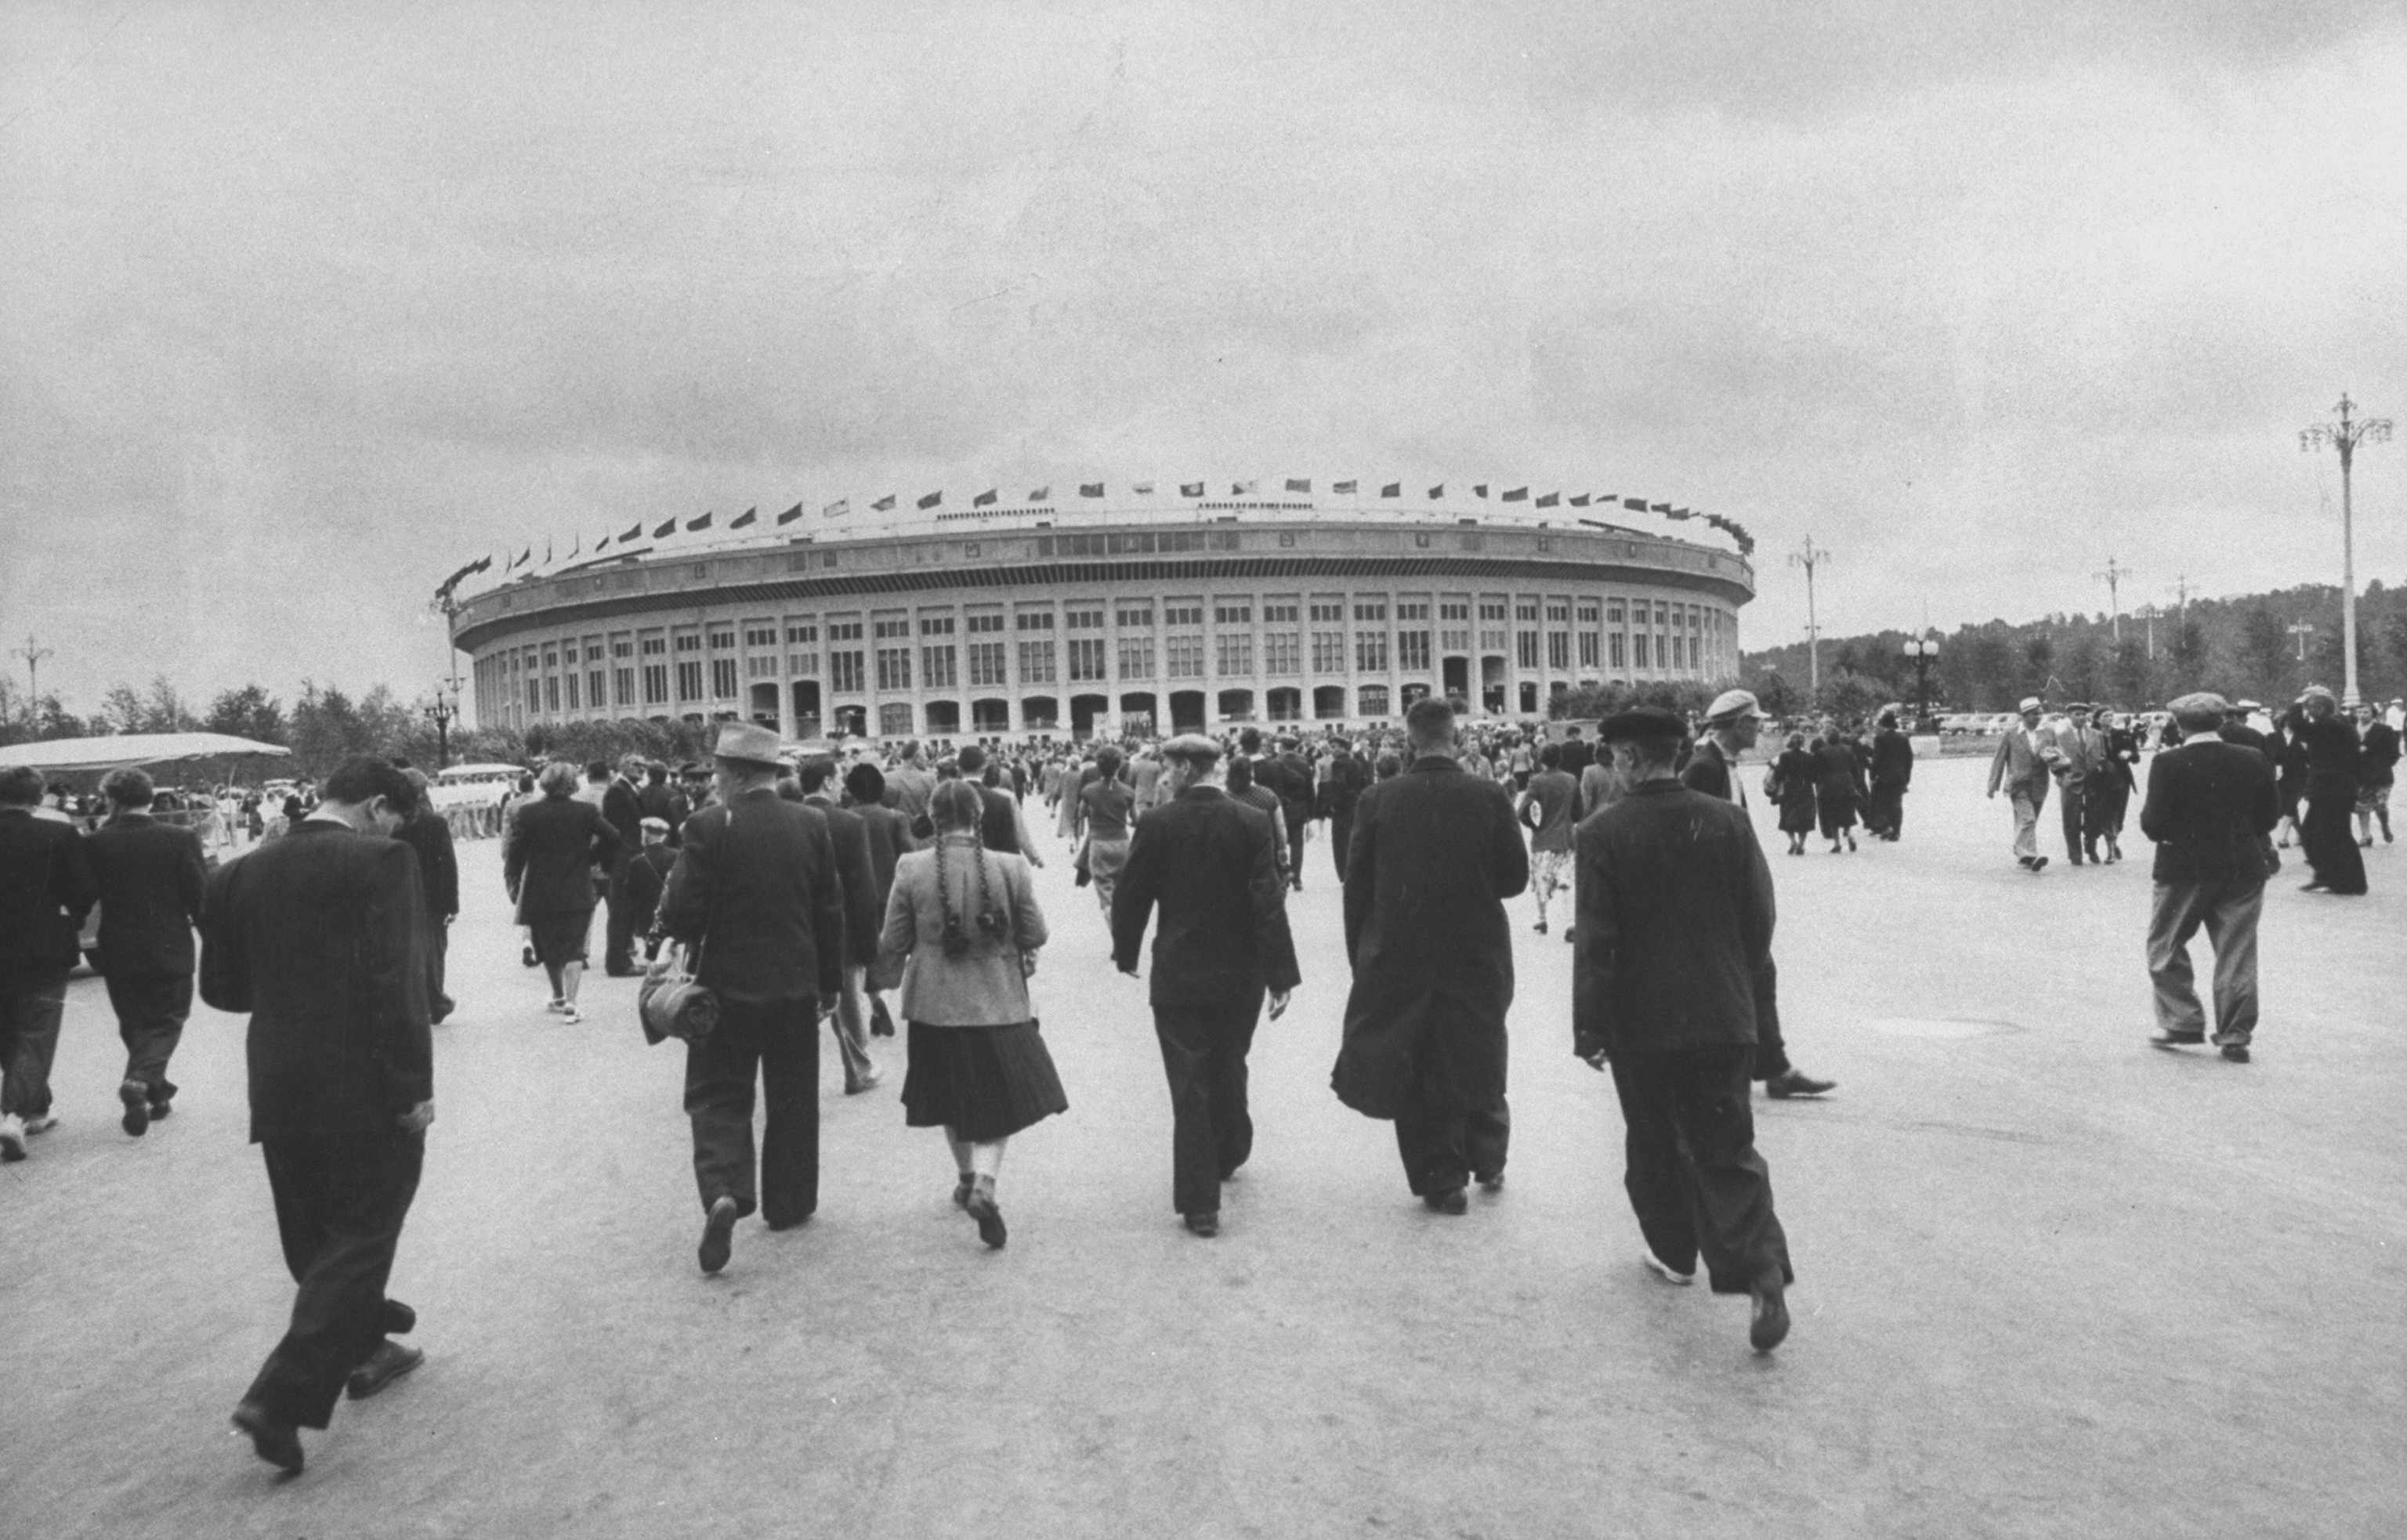 People approach the VI Lenin Stadium, now known as the Luzhniki Stadium, in Moscow, in 1956. (Photo by James Whitmore/The LIFE Images Collection/Getty Images)